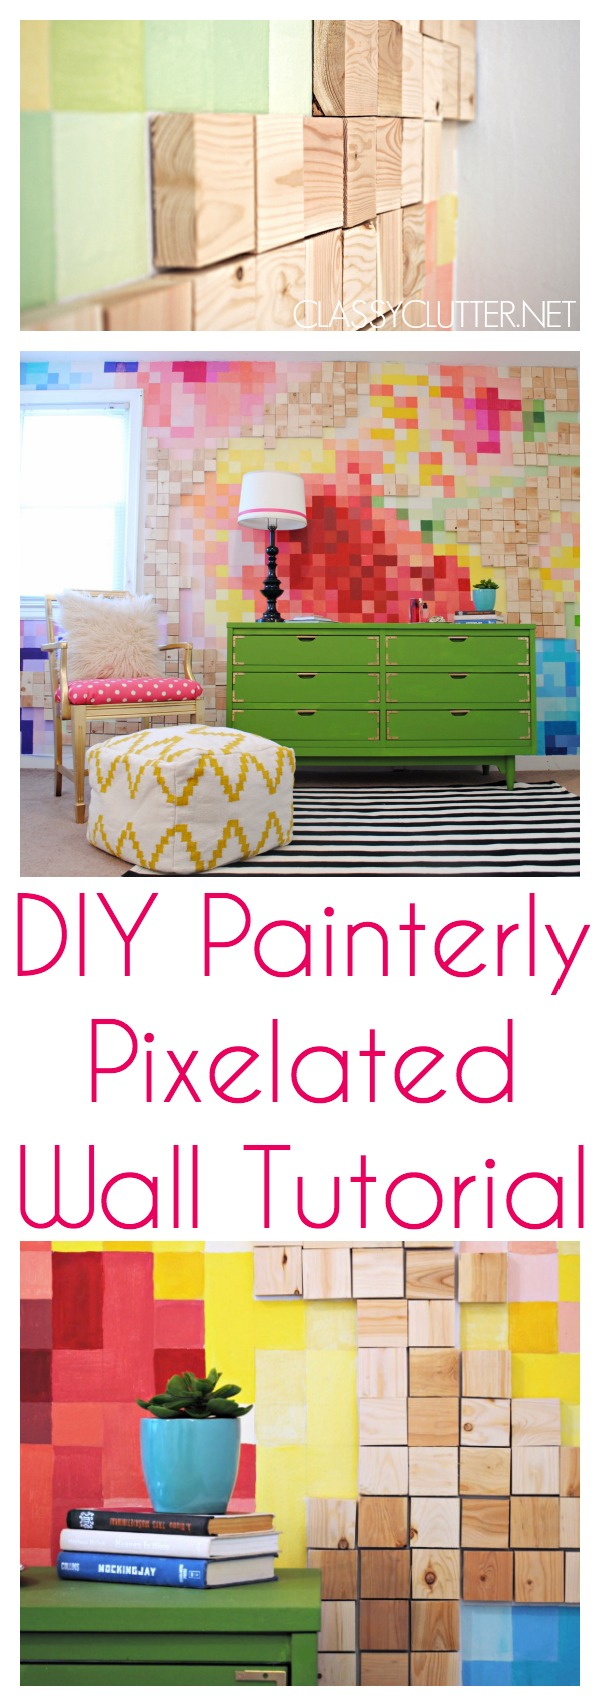 DIY Painterly Pixelated Wall Tutorial